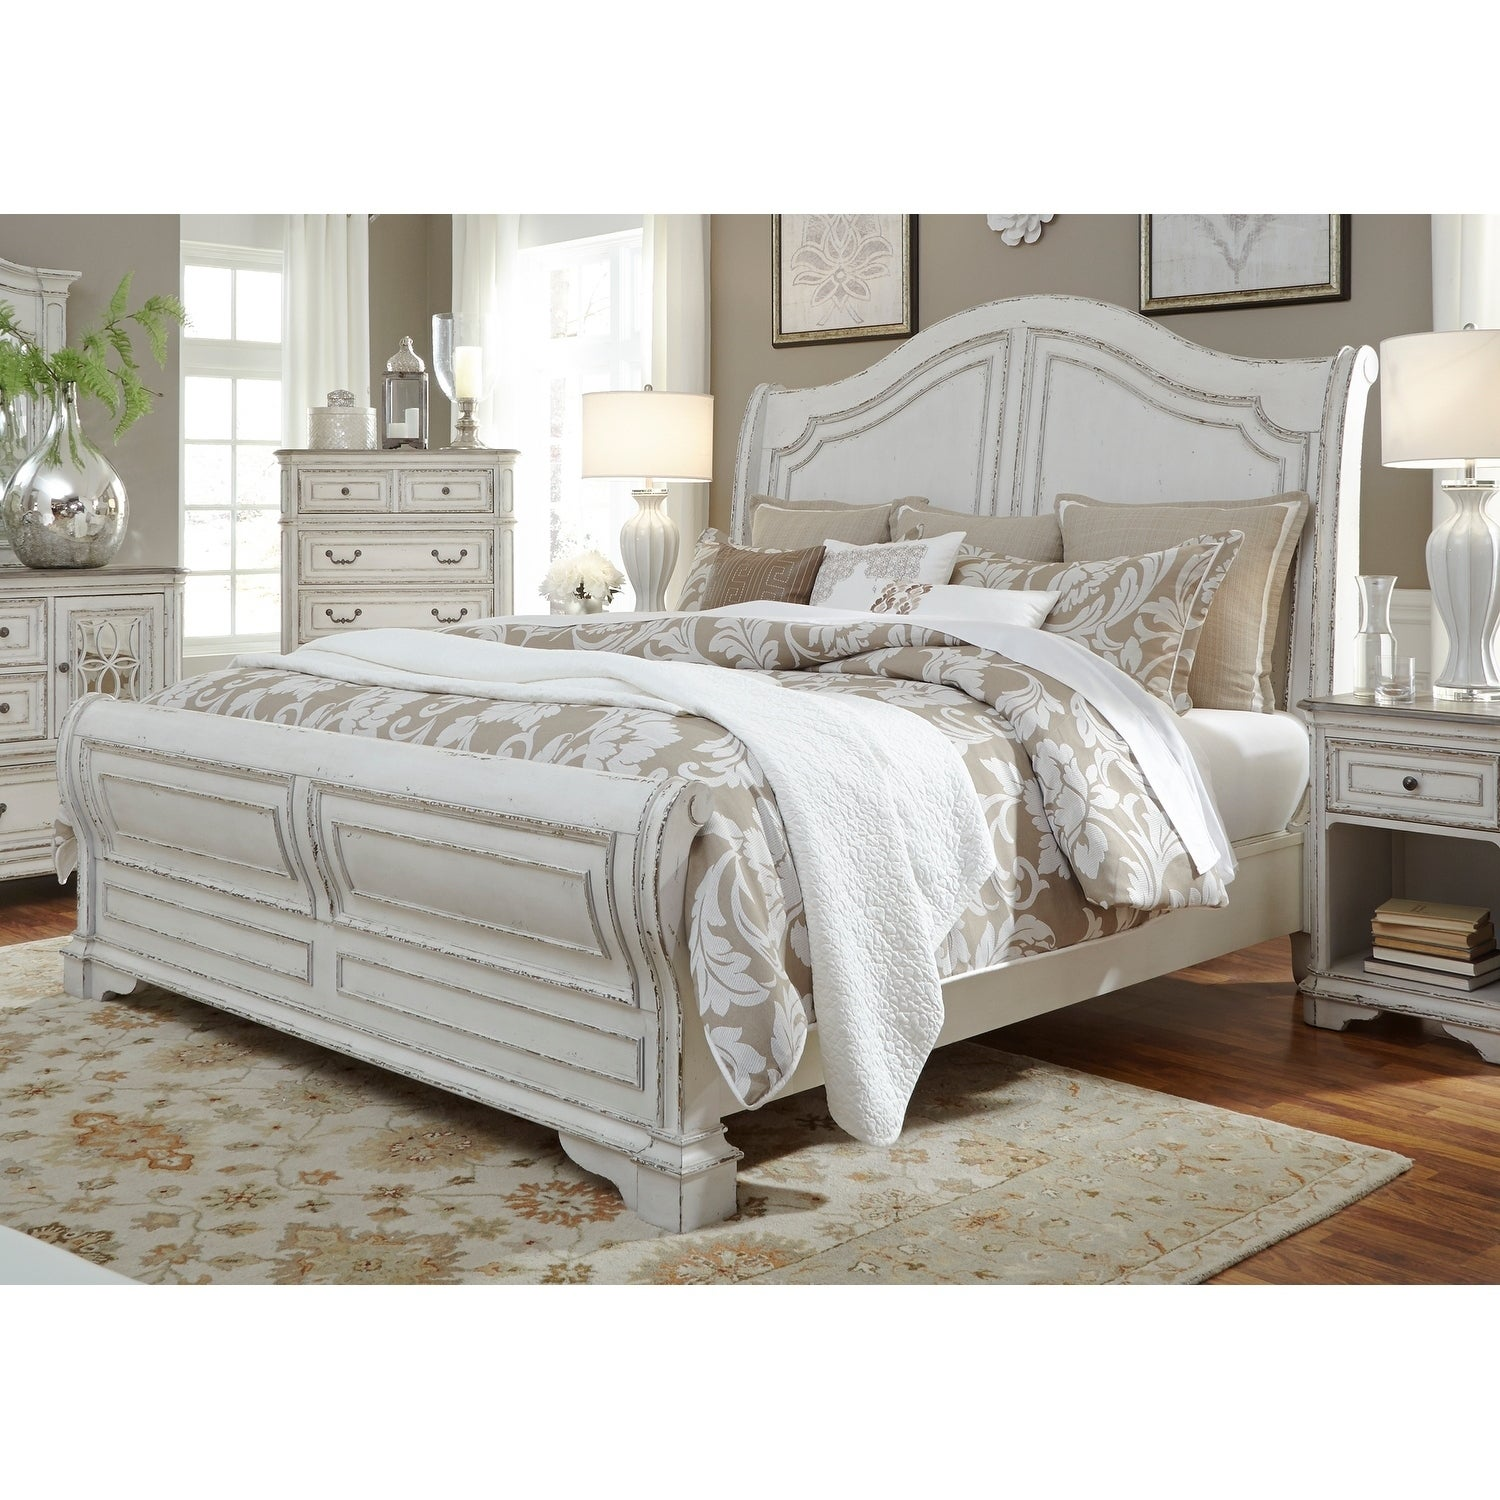 - Shop Magnolia Manor Antique White Sleigh Bed - On Sale - Overstock